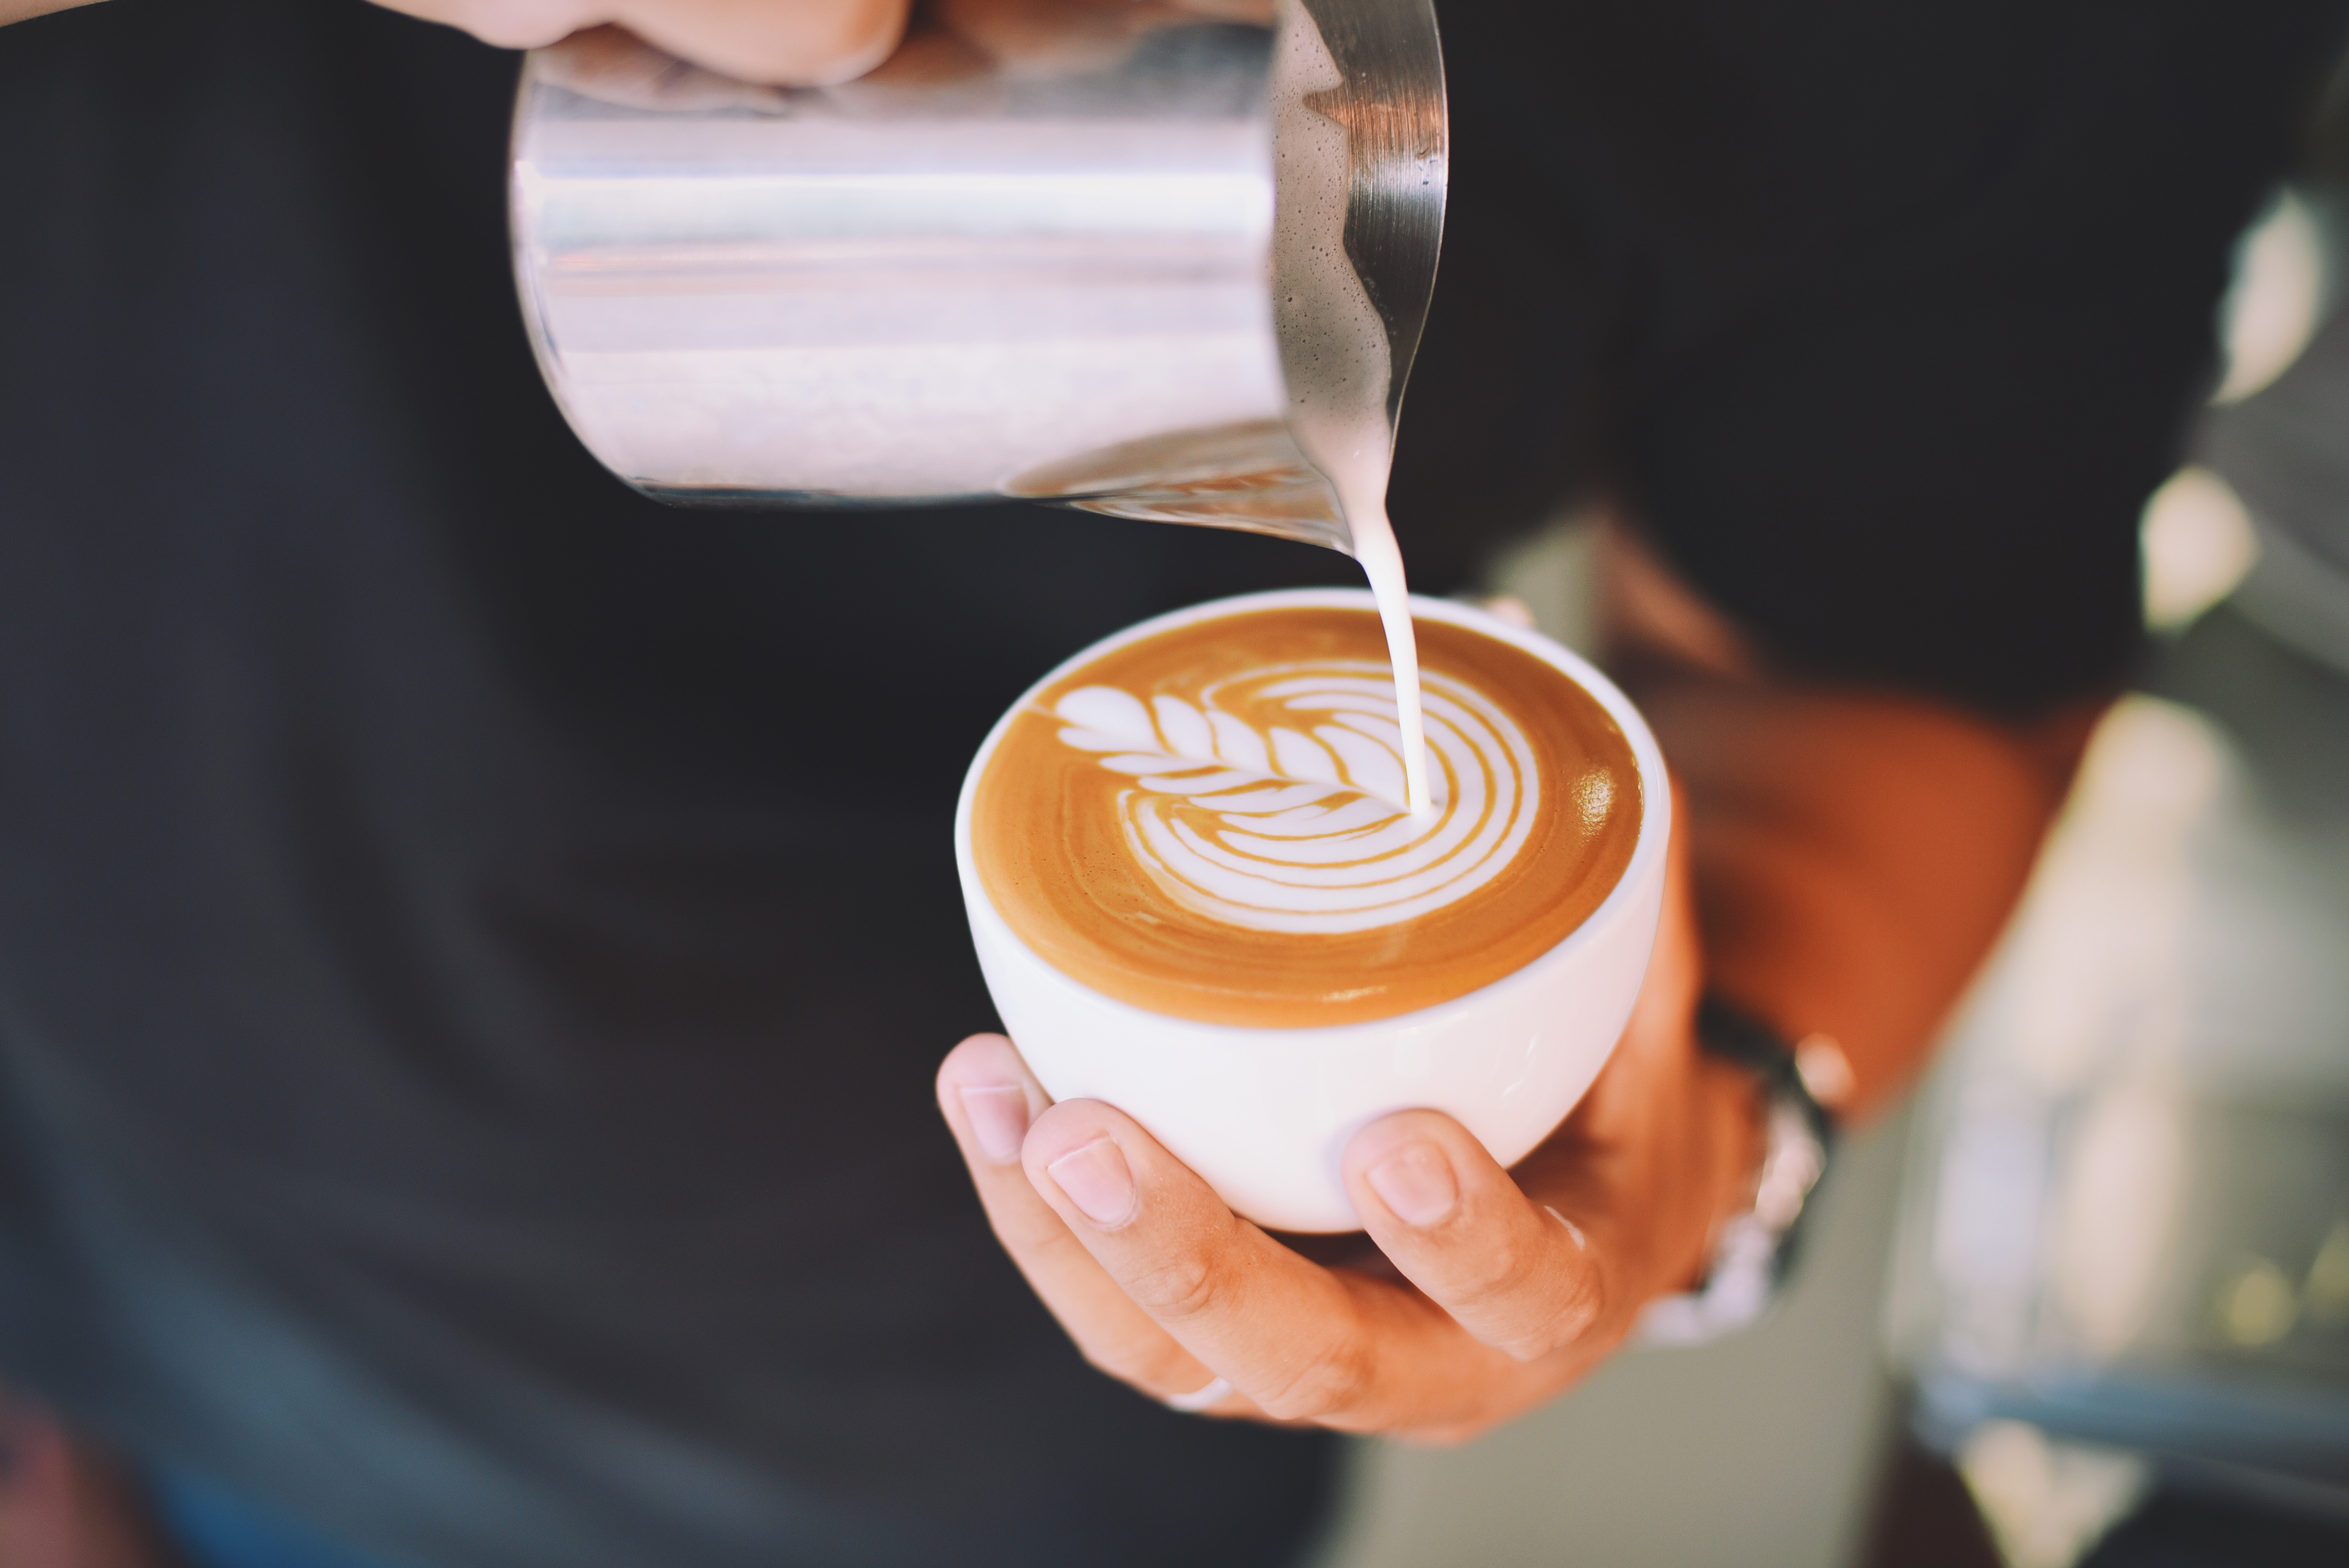 Close-up of Hand Holding Cappuccino, Adult, Espresso, Restaurant, Person, HQ Photo